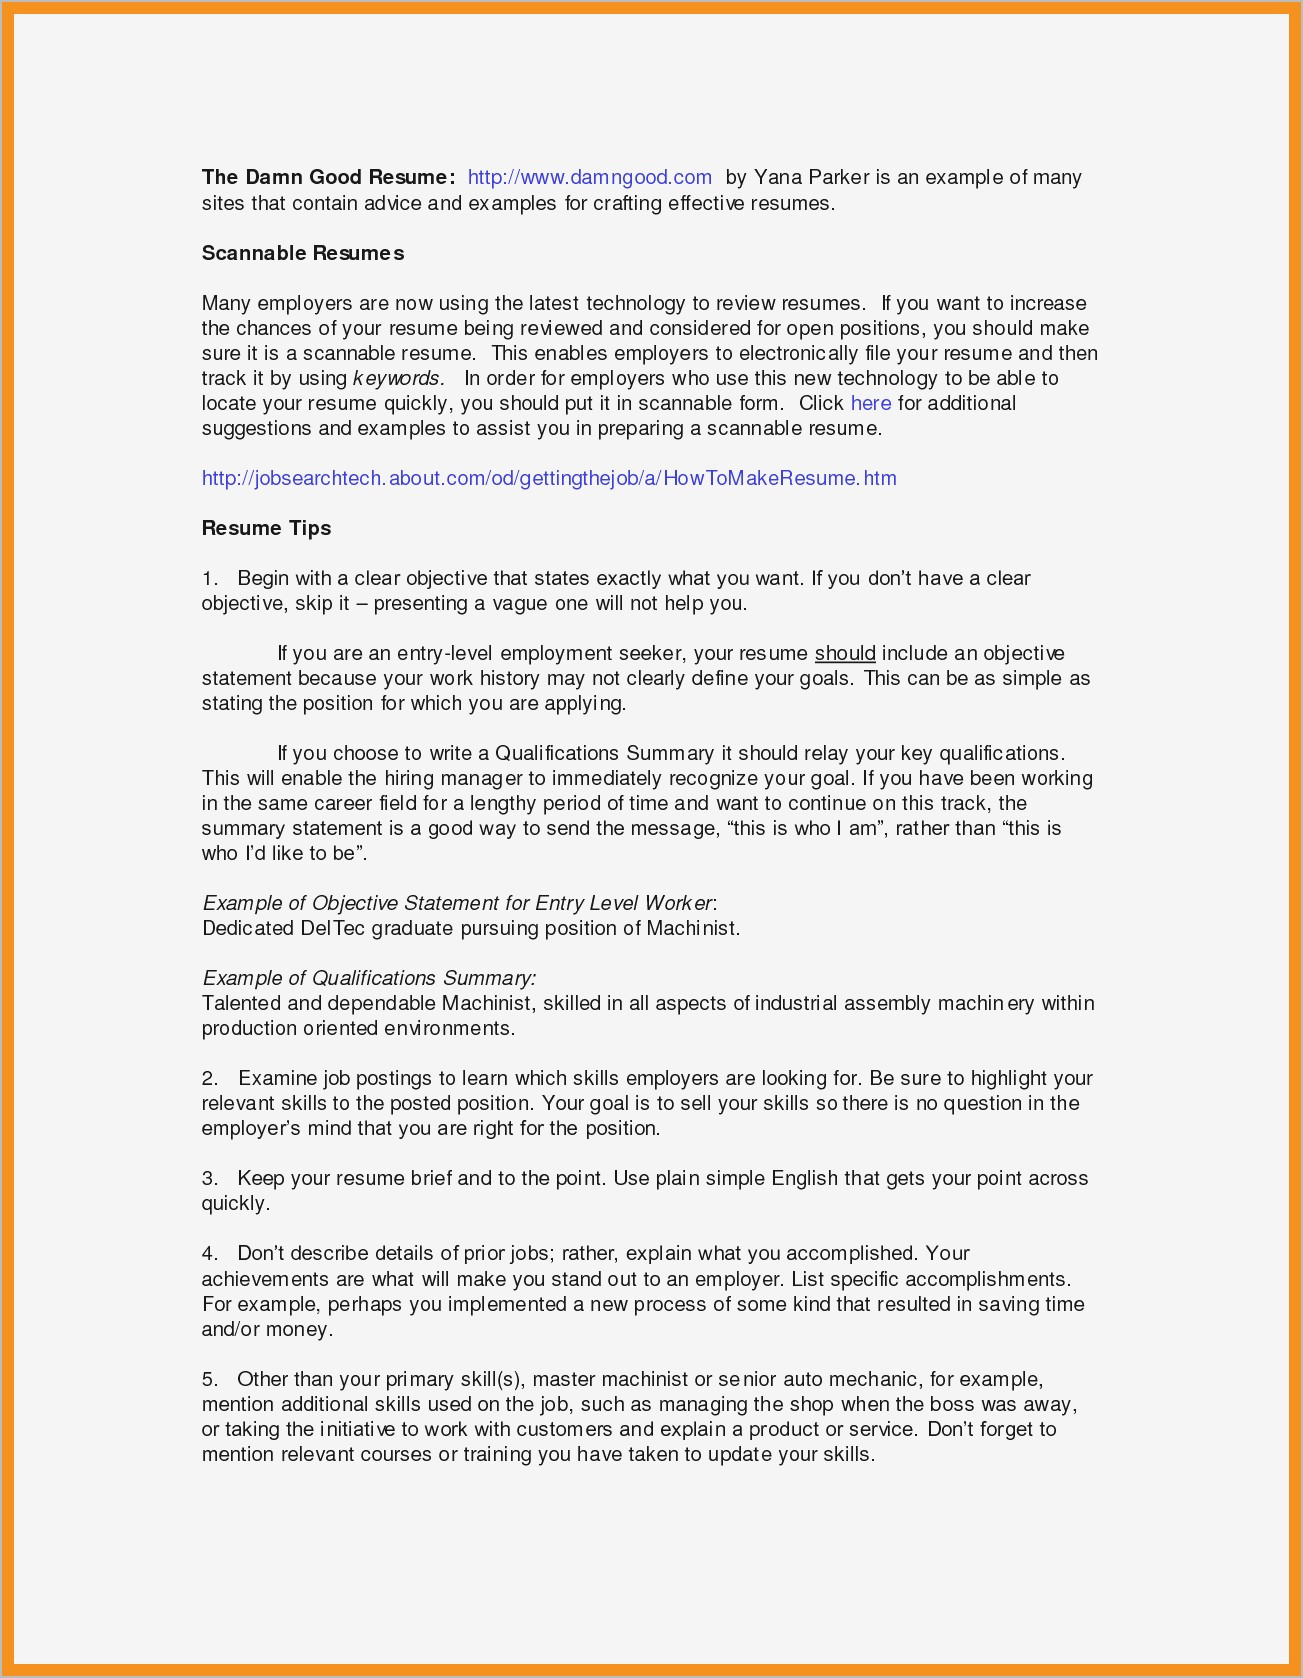 Translate Resume to Spanish - Career Summary Resume Awesome Resume Career Overview Selo L Ink